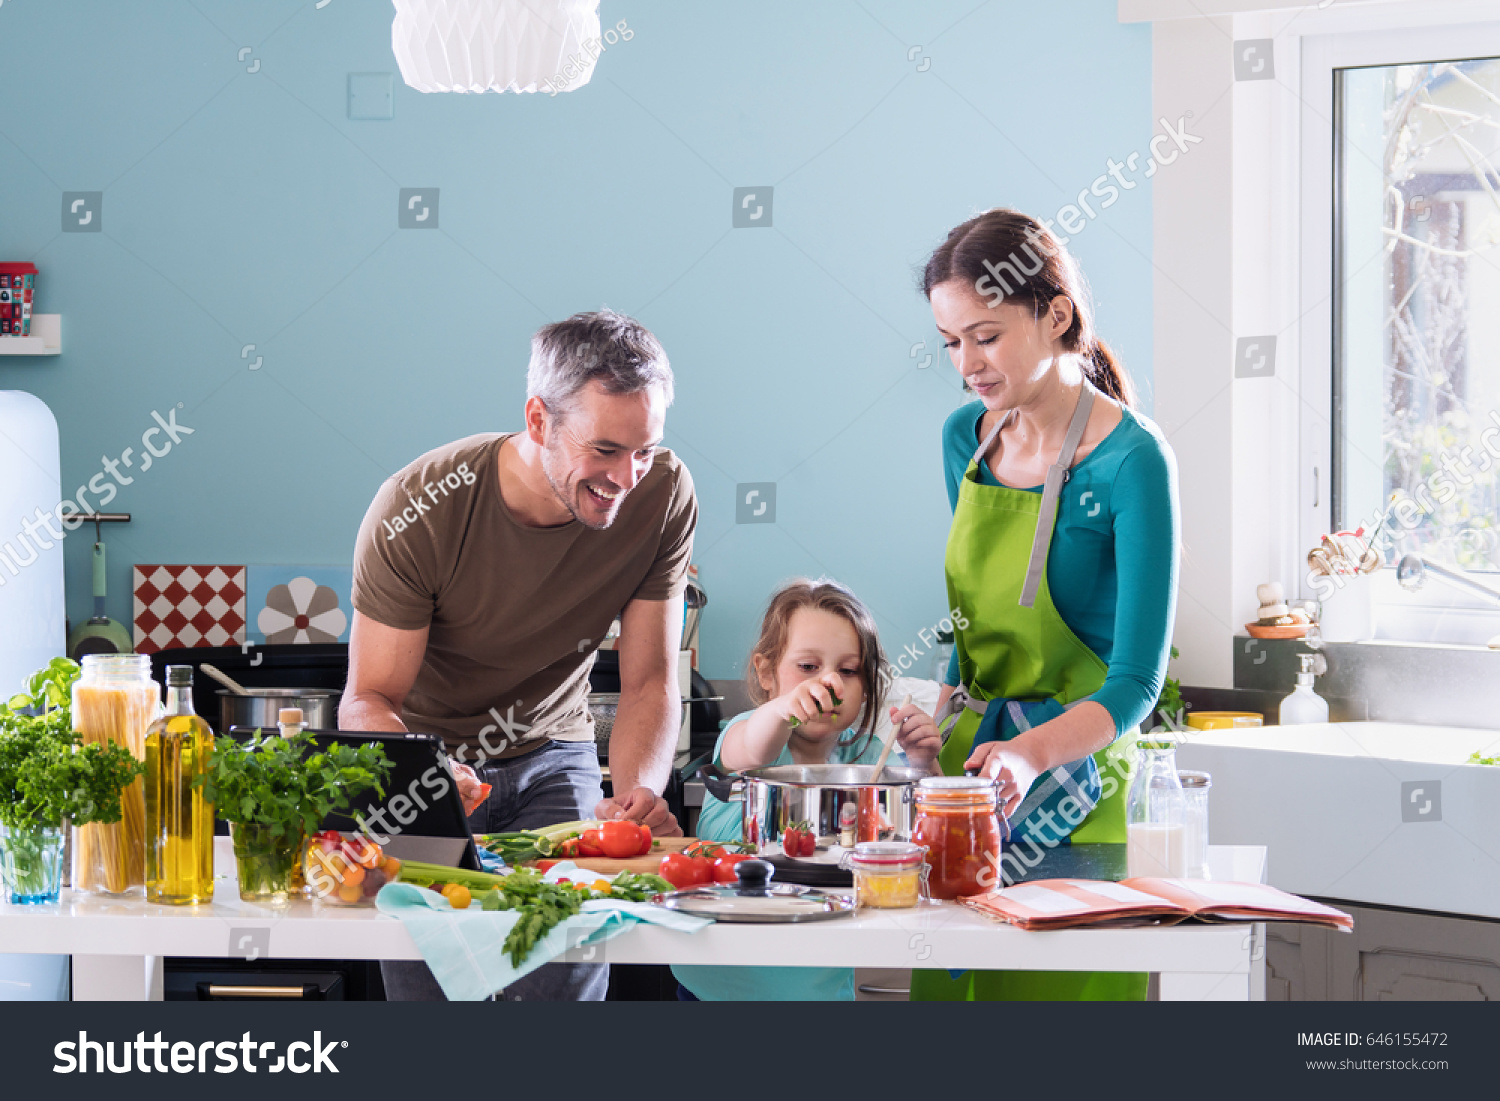 Dad Mom Their Little Daughter Cooking Stock Photo (Royalty Free ...